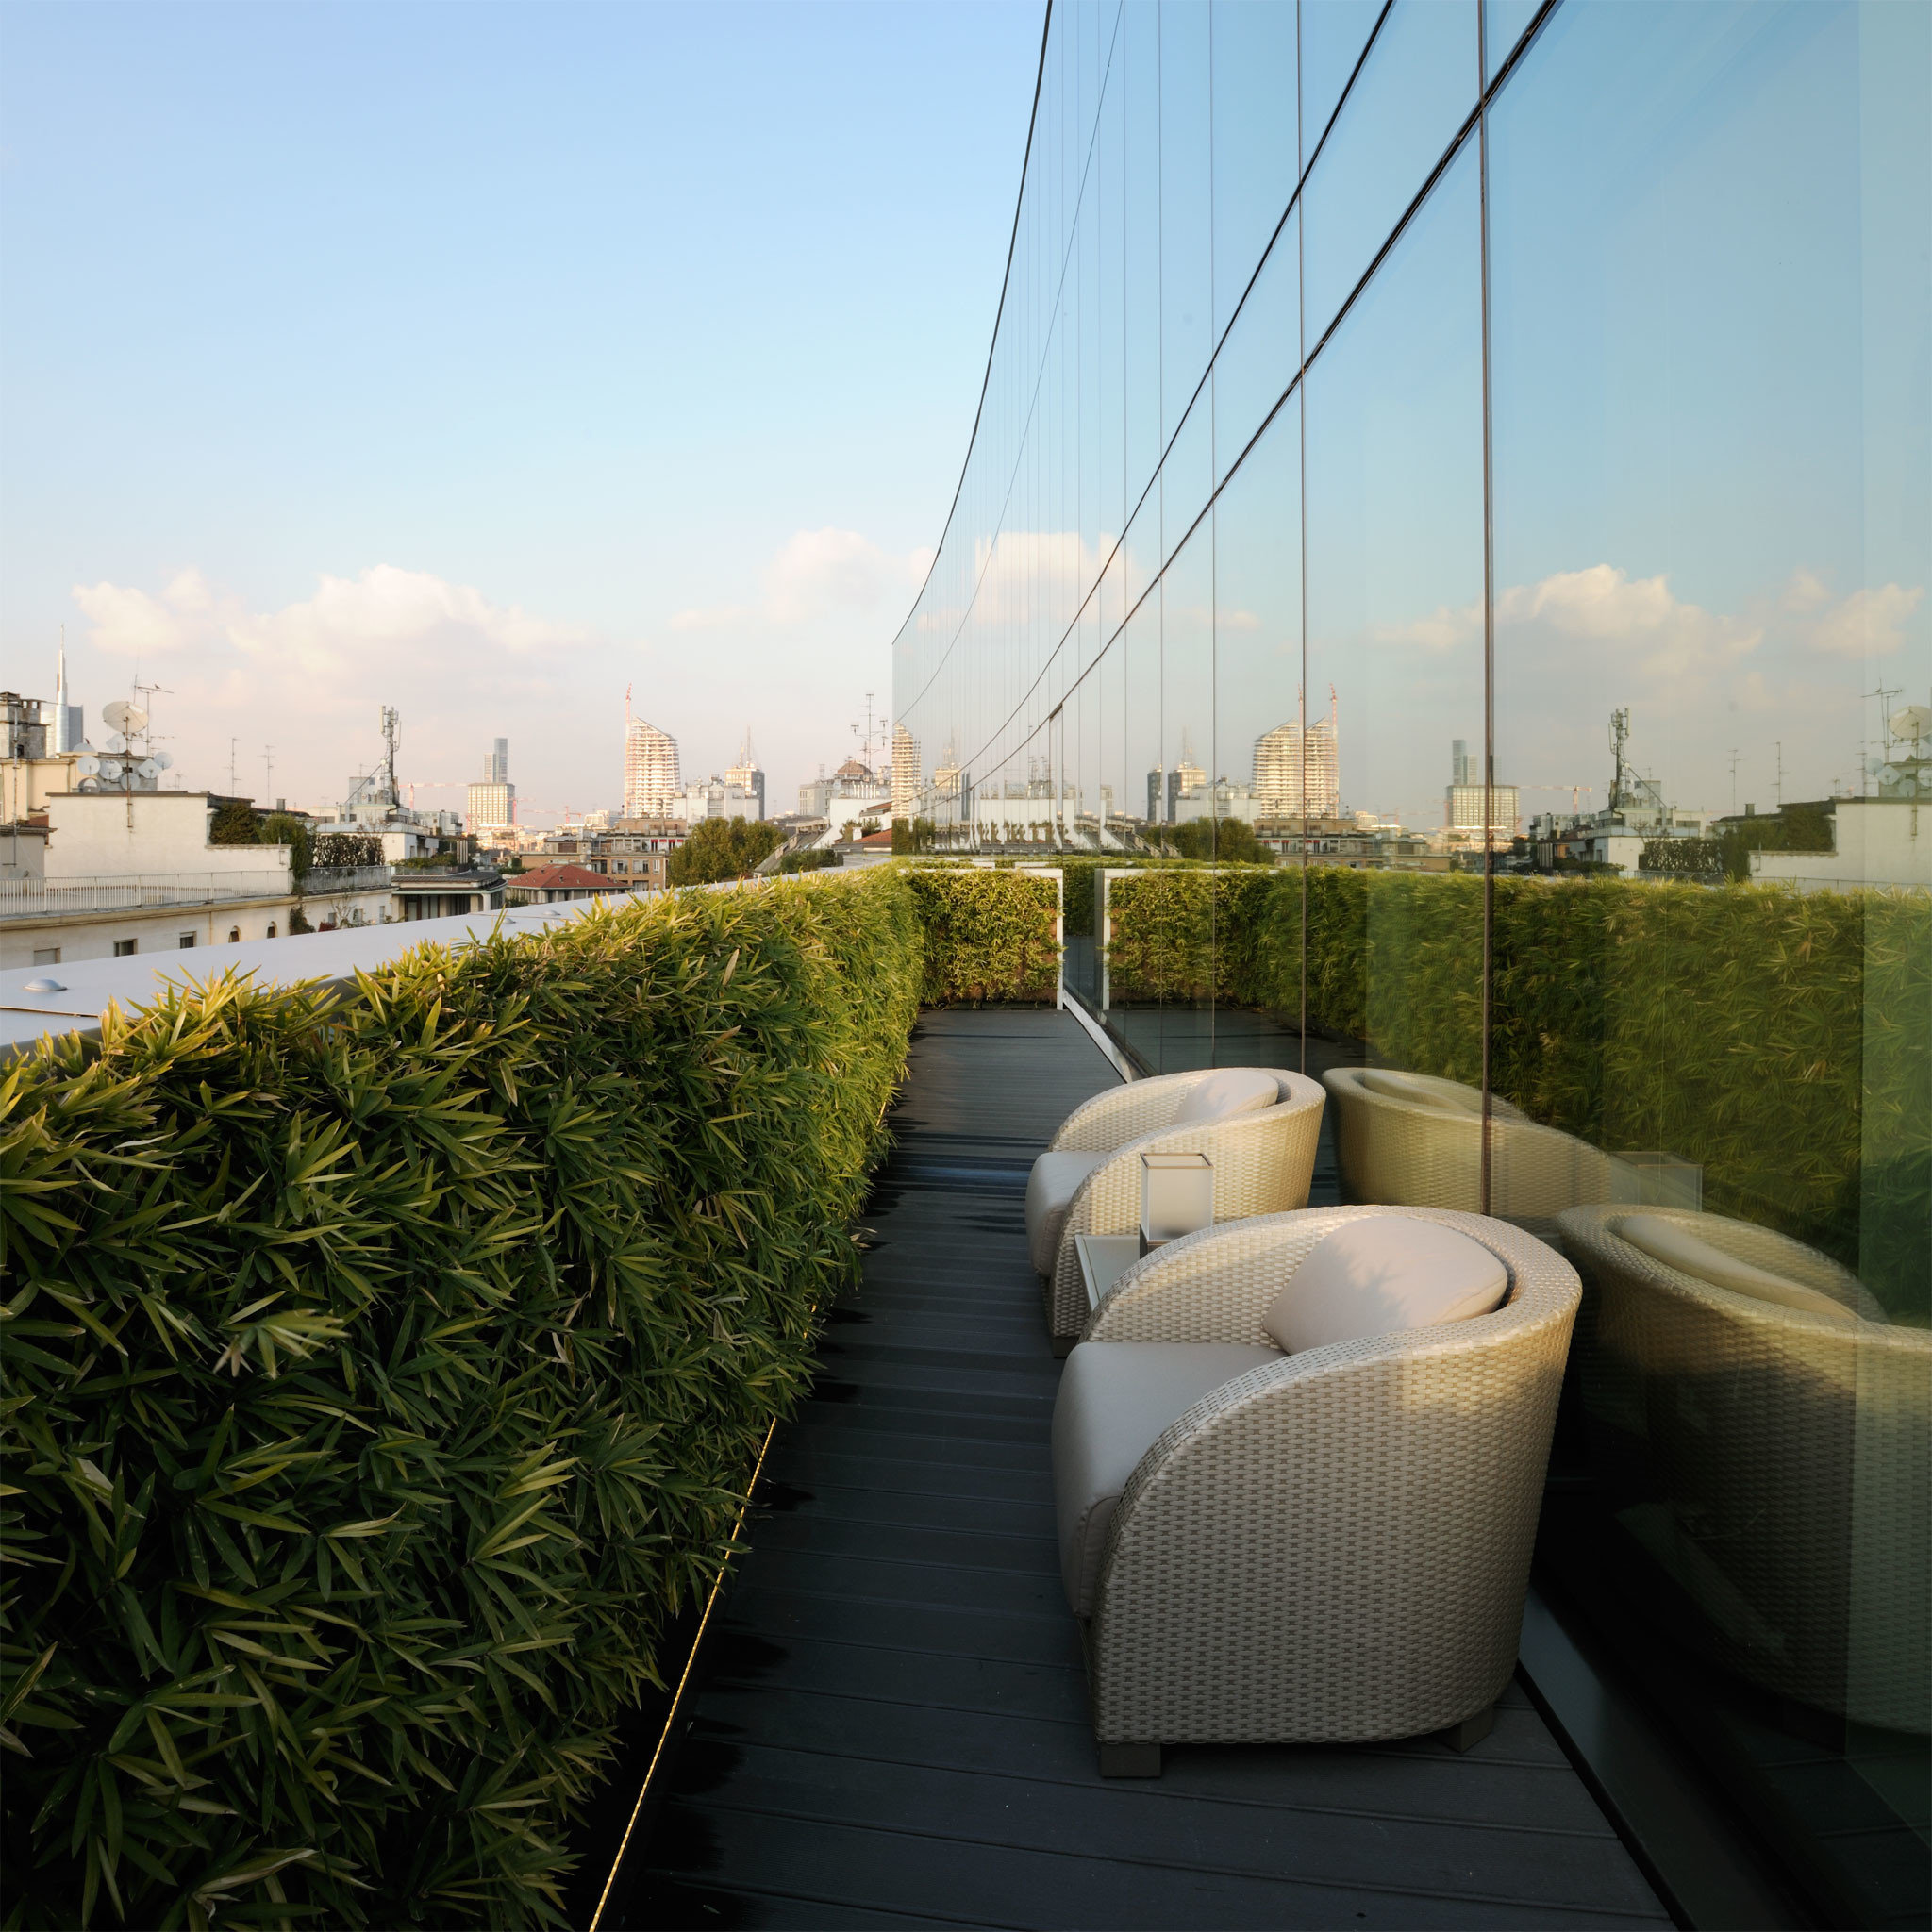 Hotels Luxury Modern Scenic views sky outdoor grass Architecture outdoor structure flower sunlight overlooking